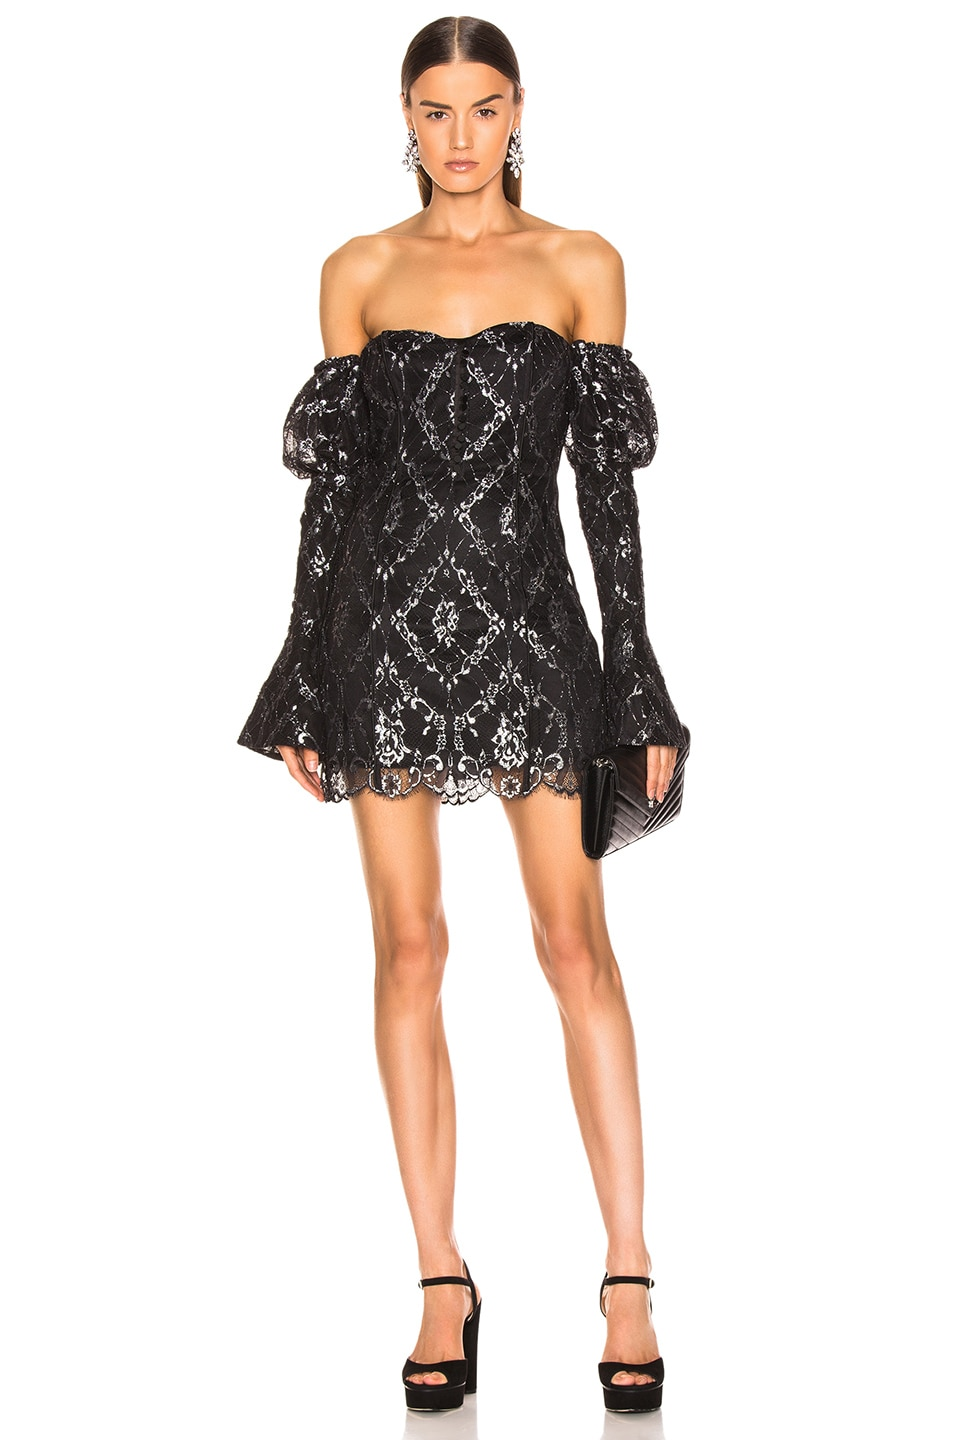 Image 1 of JONATHAN SIMKHAI for FWRD Off the Shoulder Metallic Lace Dress in Black